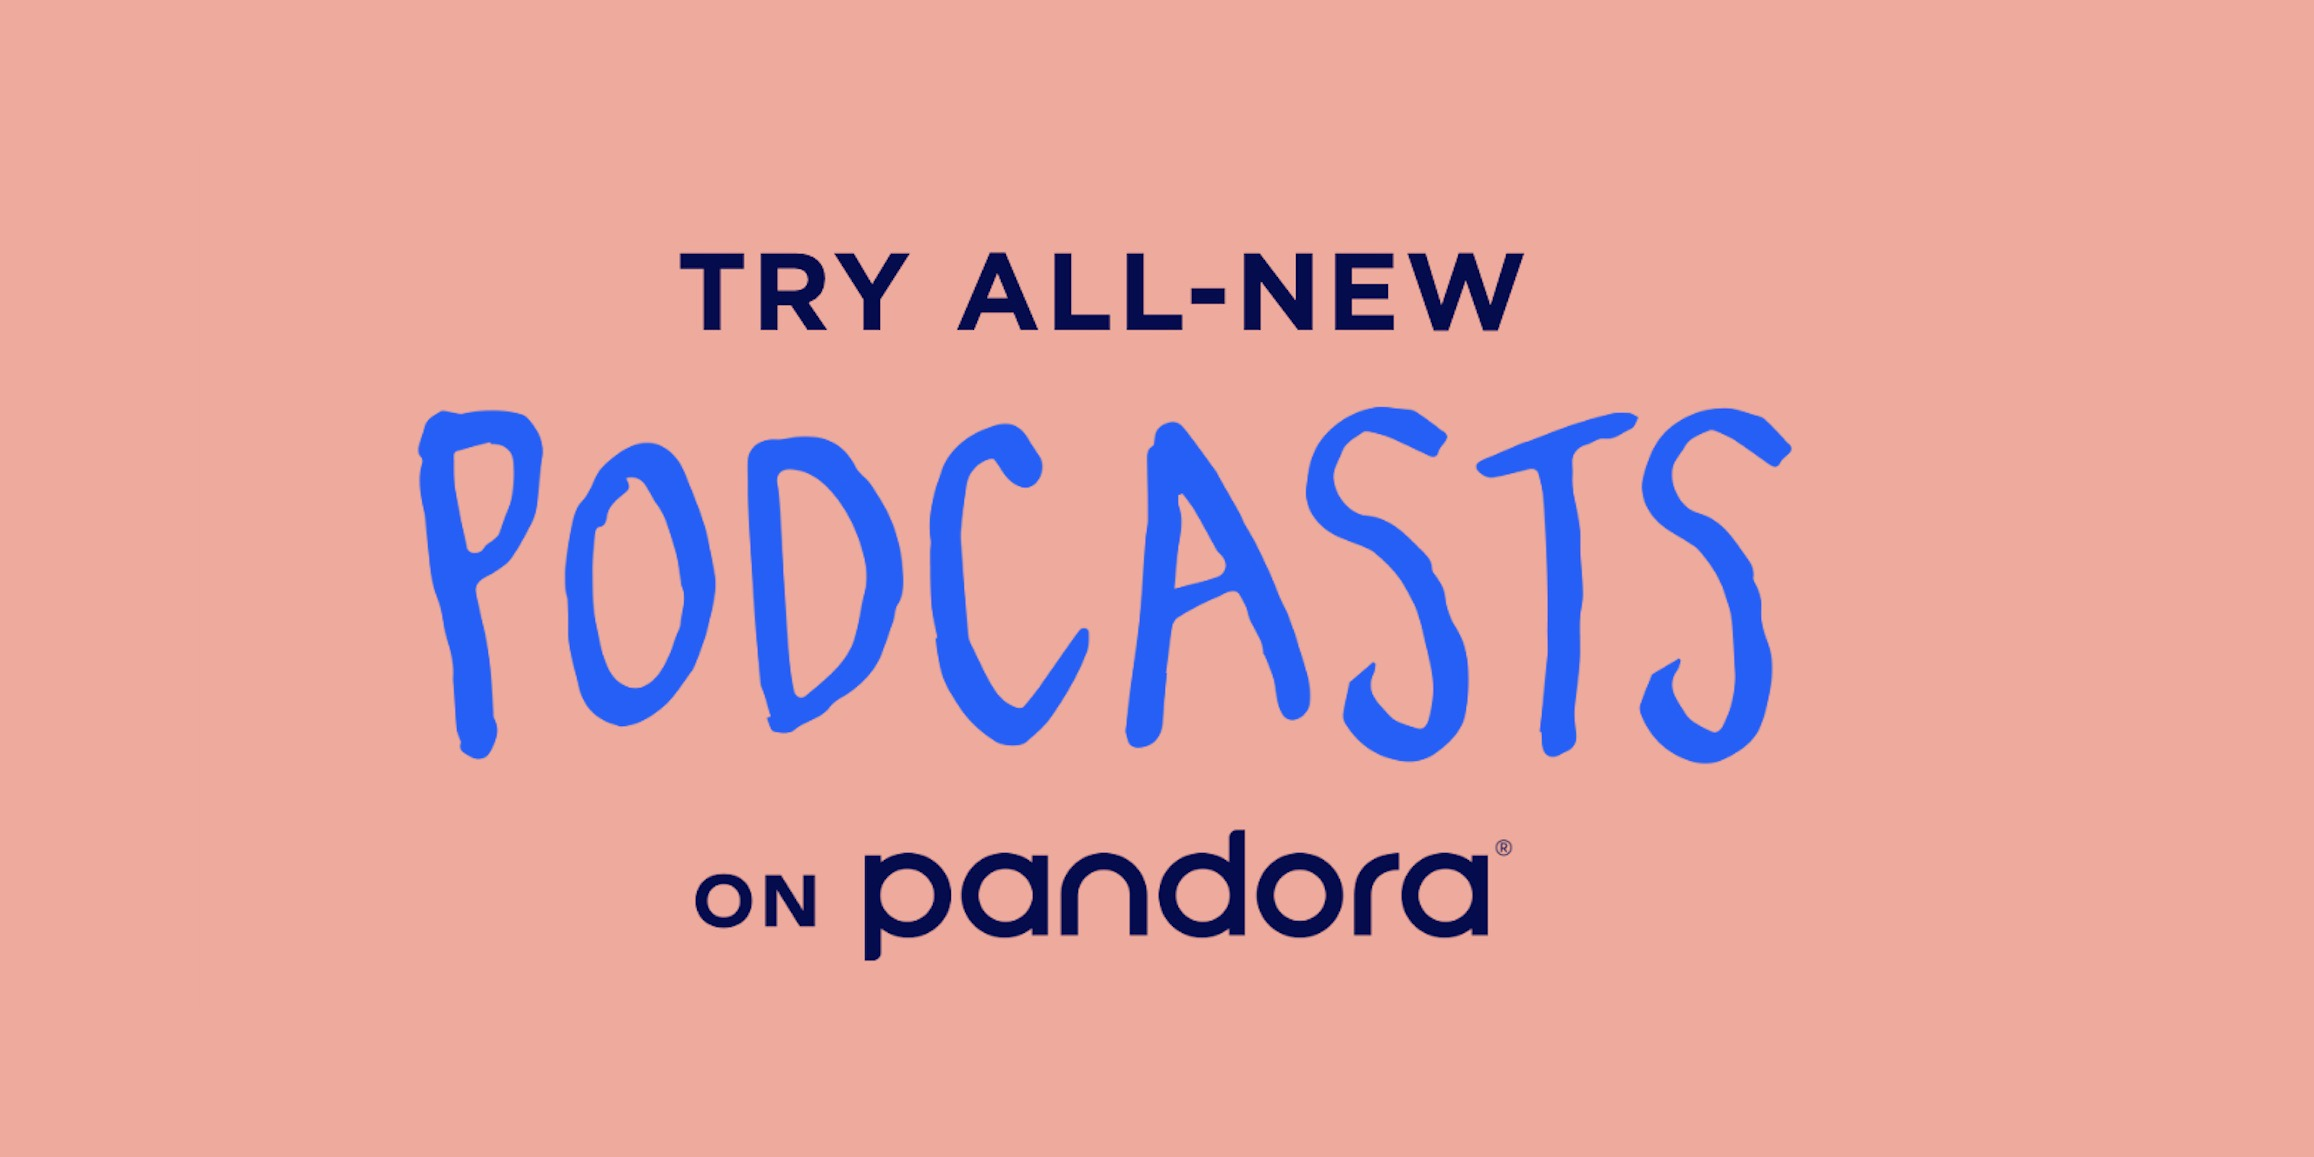 Podcasts on Pandora officially launches with 100,000 episodes from 100 shows